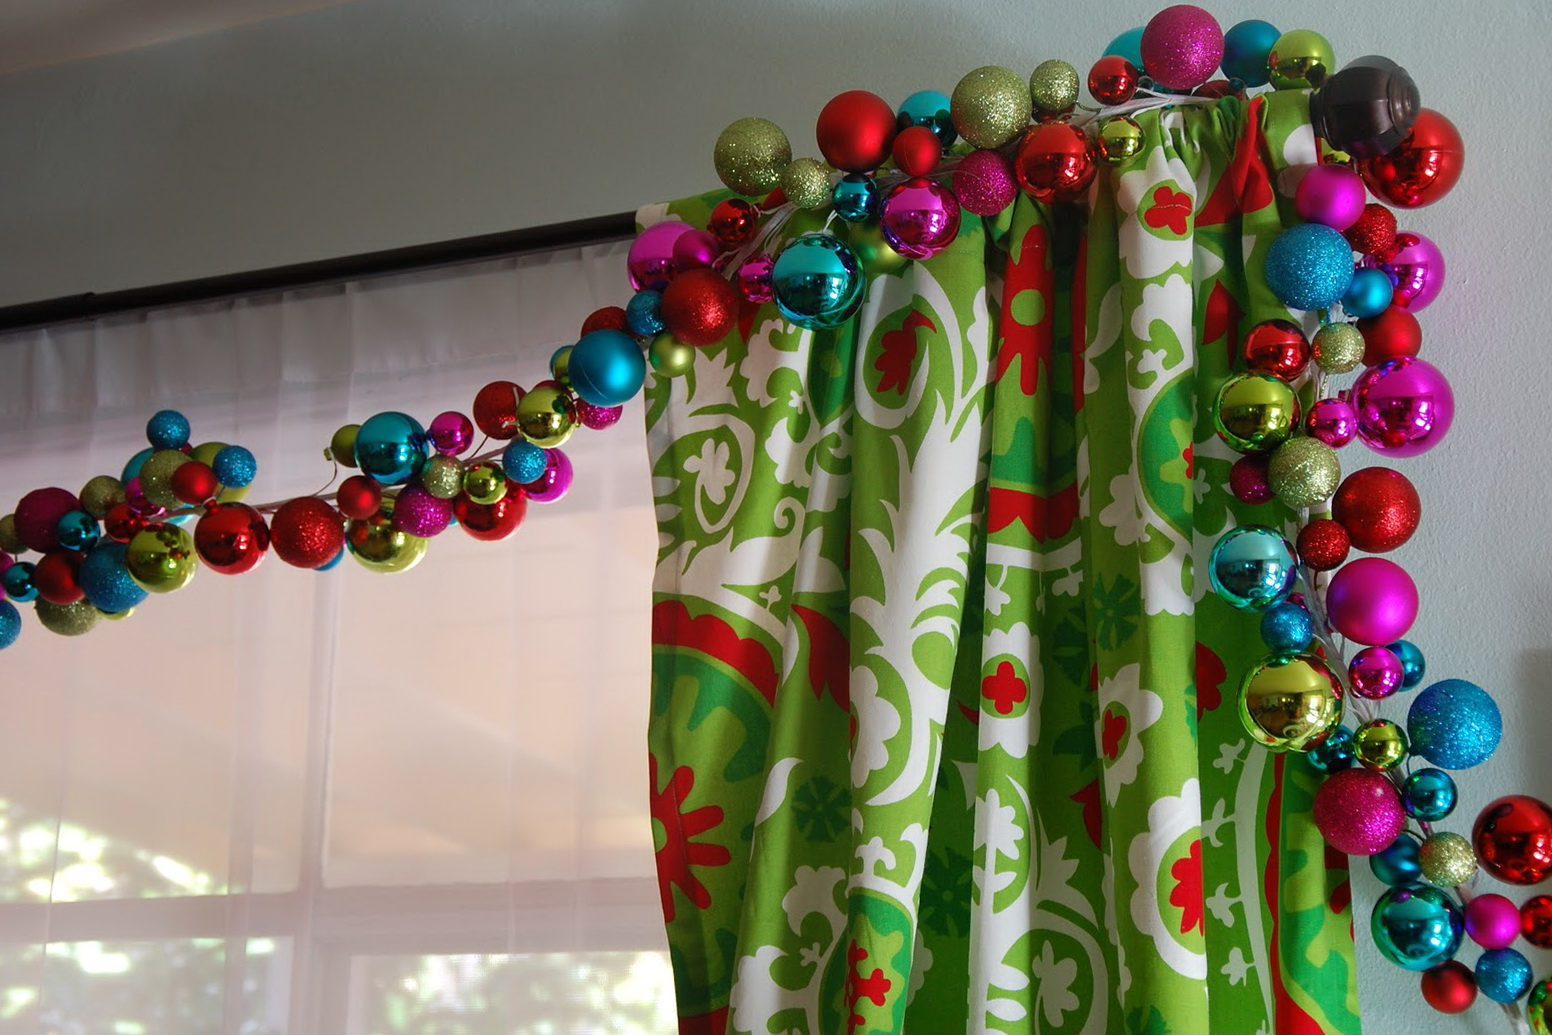 Worksheet. IDEAS PARA DECORAR CORTINAS EN NAVIDAD 2016